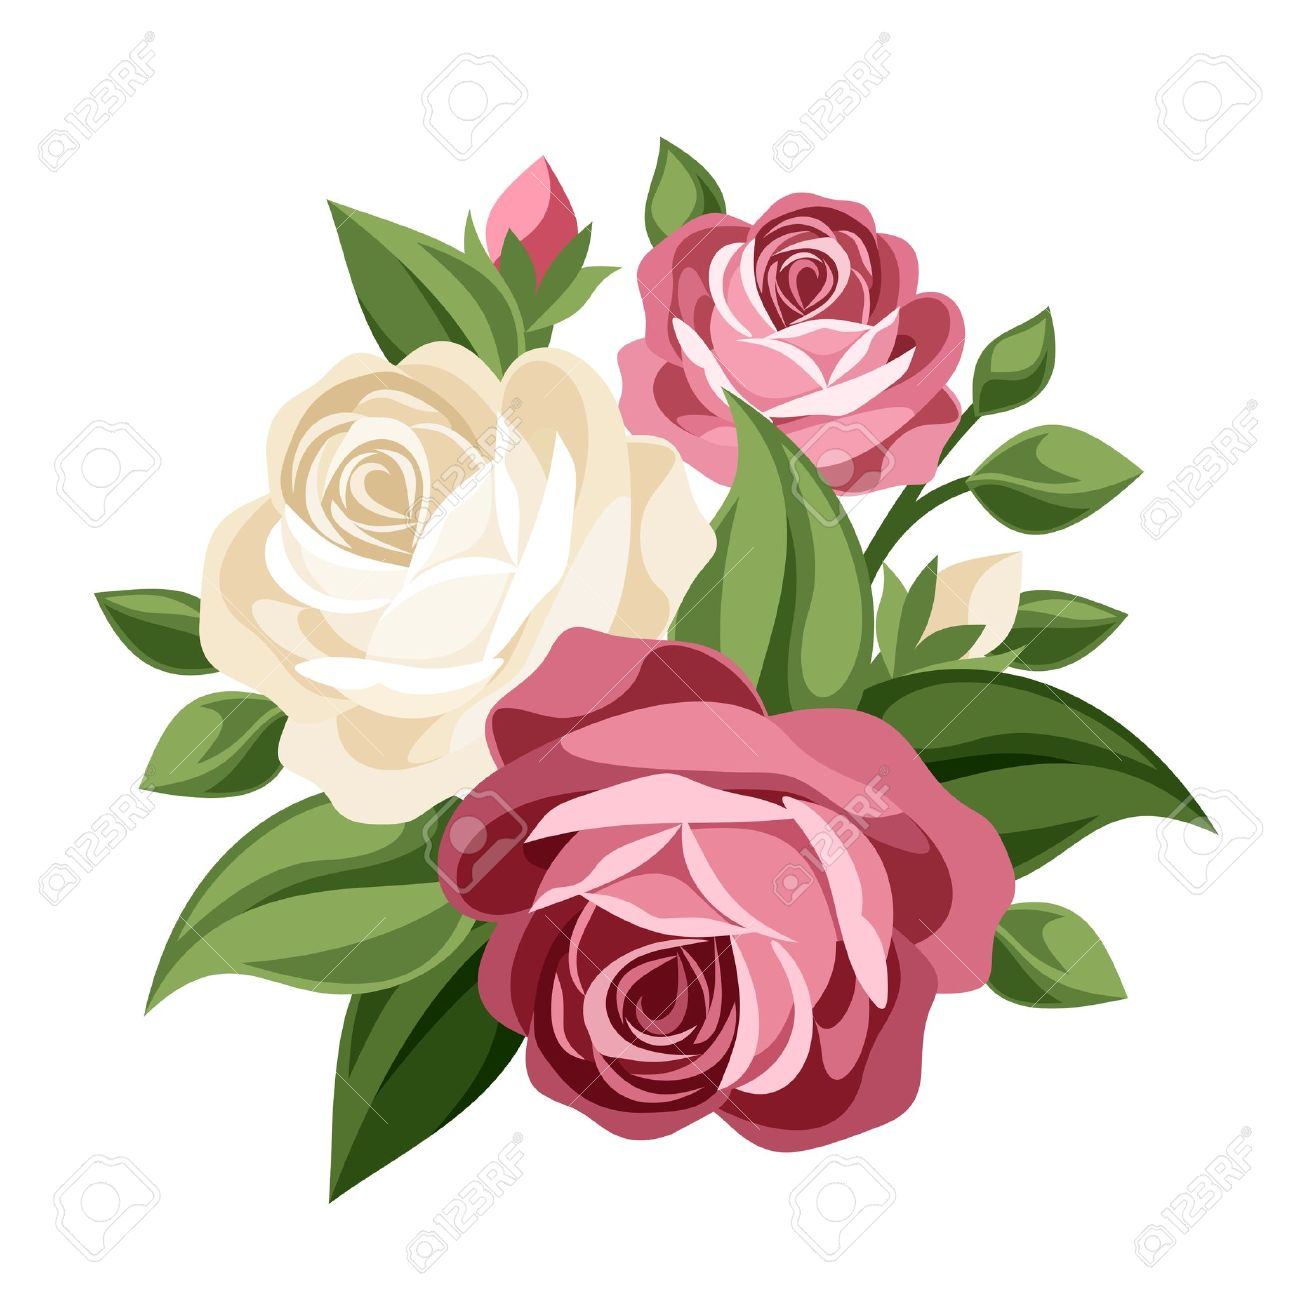 pink and white vintage roses vector illustration royalty free rh 123rf com roses vectoriel rose vectoriel gratuit